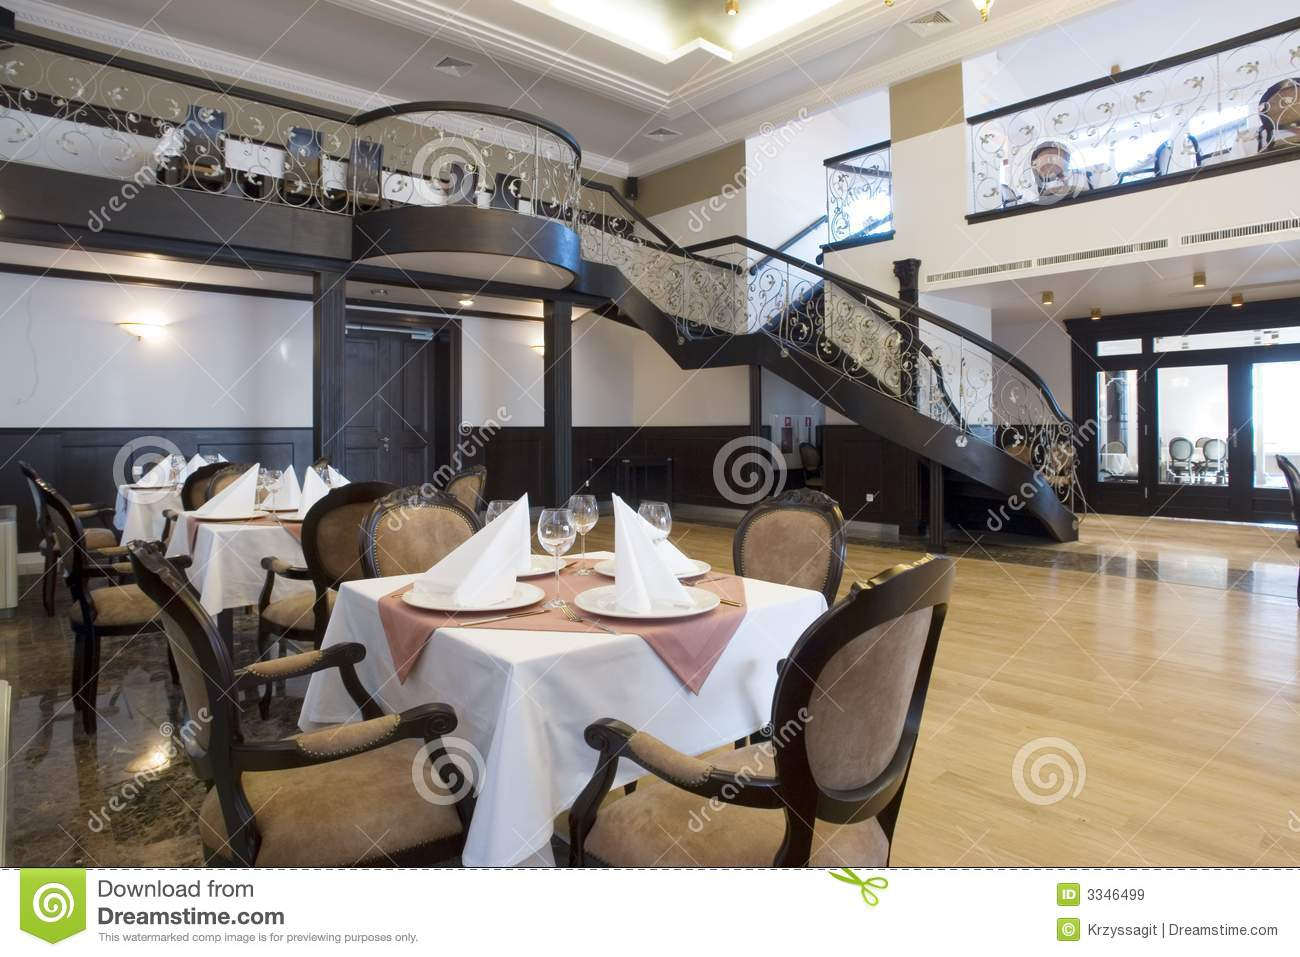 Luxury dining hall interior royalty free stock images for Dining hall interior